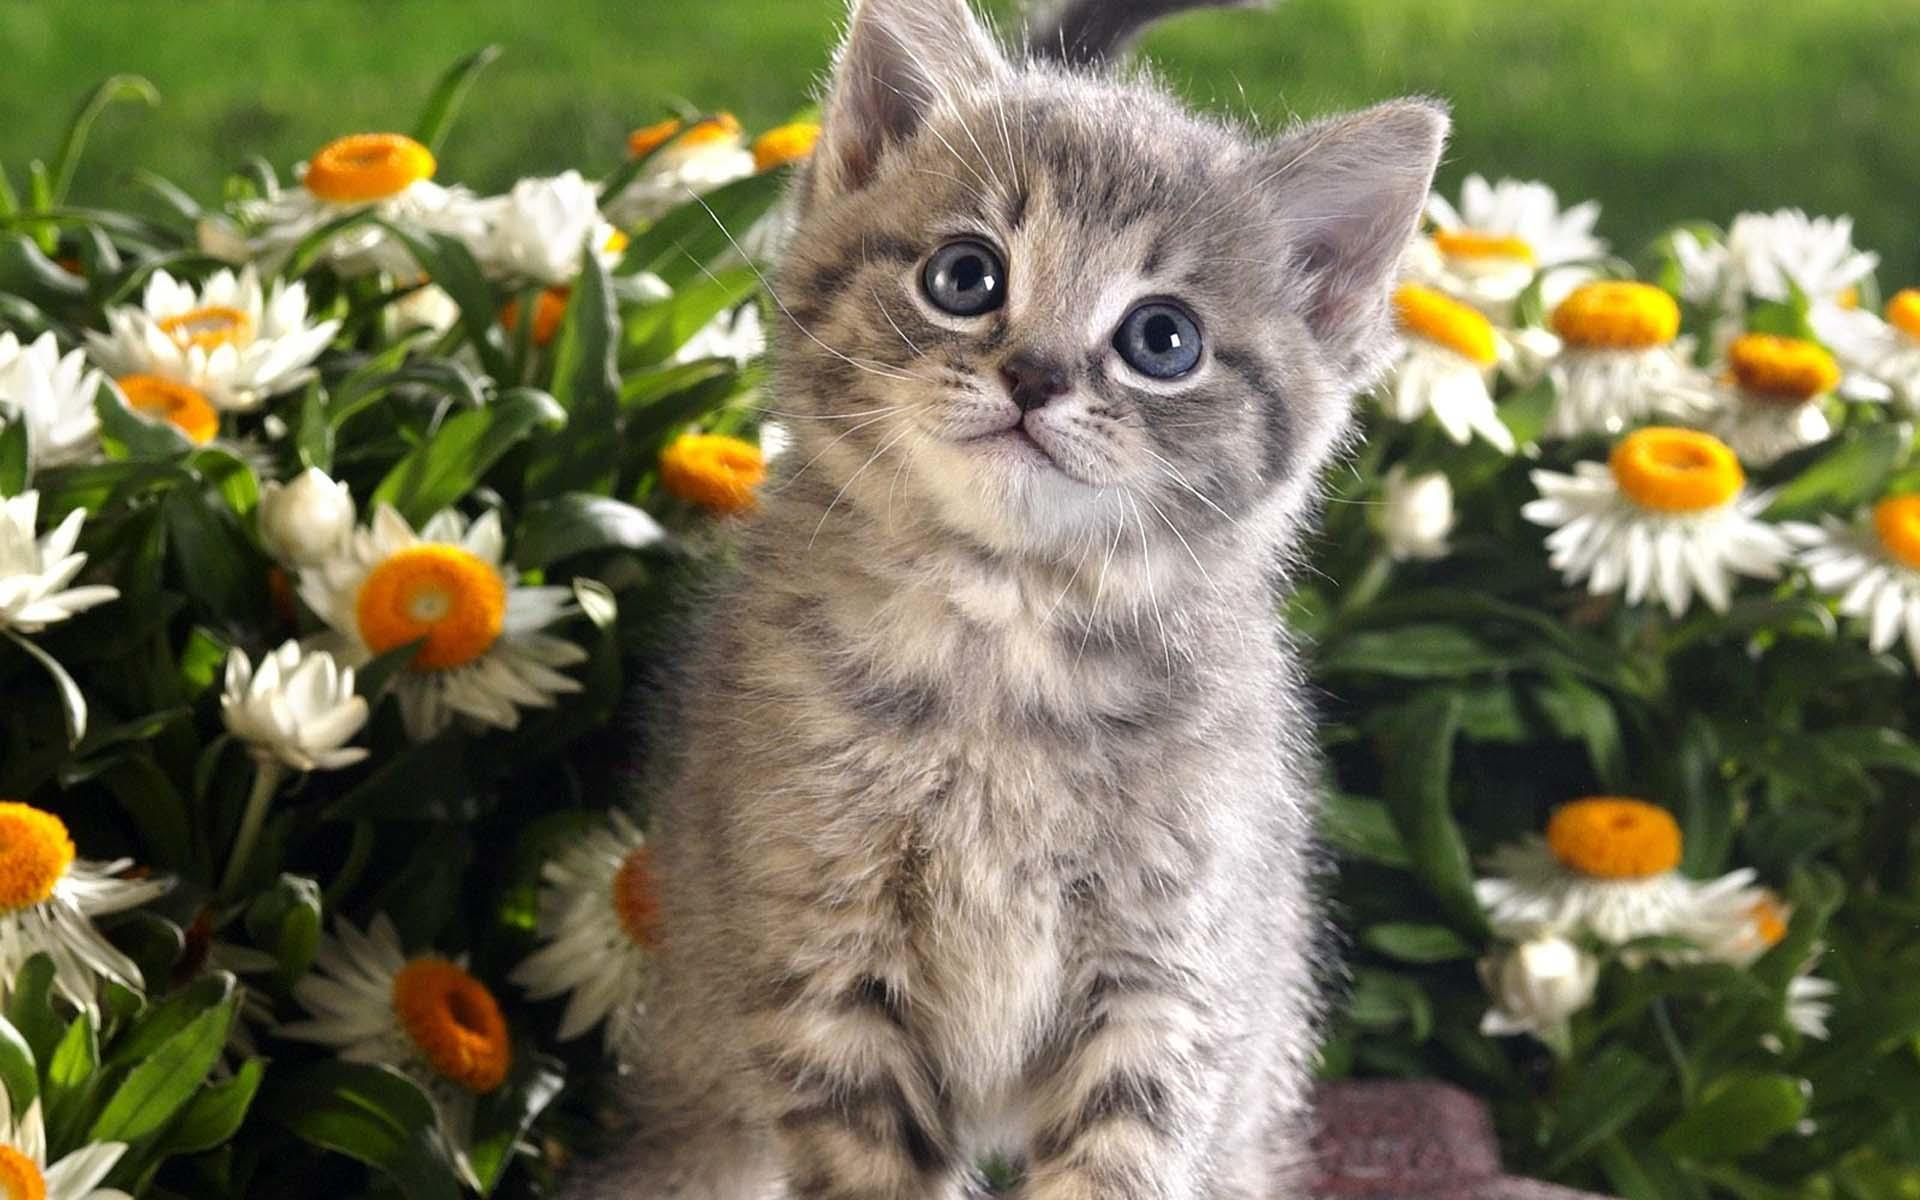 A kitten is a juvenile cat After being born kittens are totally dependent on their mother for survival and they do not normally open their eyes until after seven to